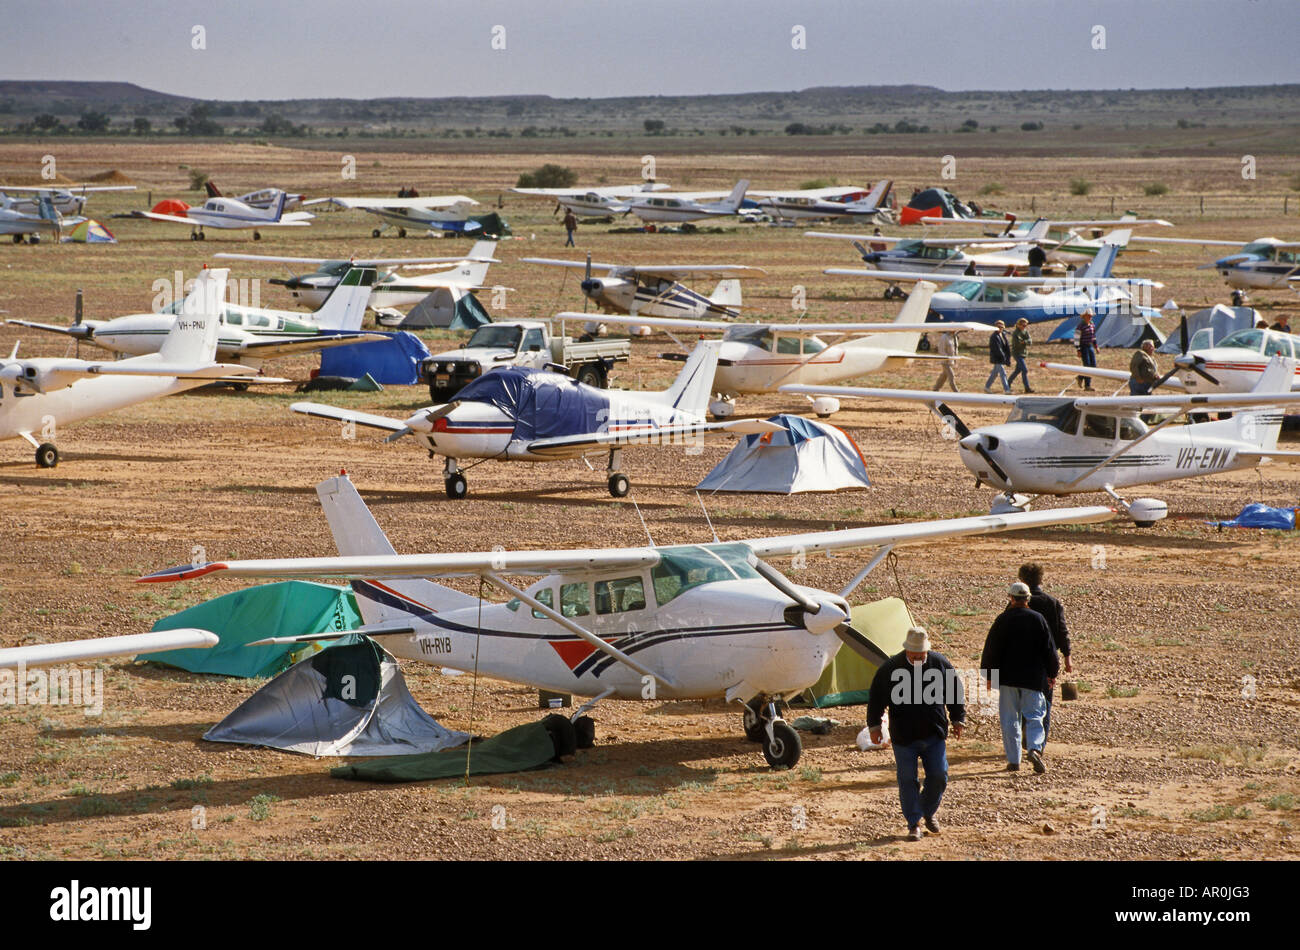 Airfield with airplains, annual horse races, Birdsville, Queensland, Australia - Stock Image